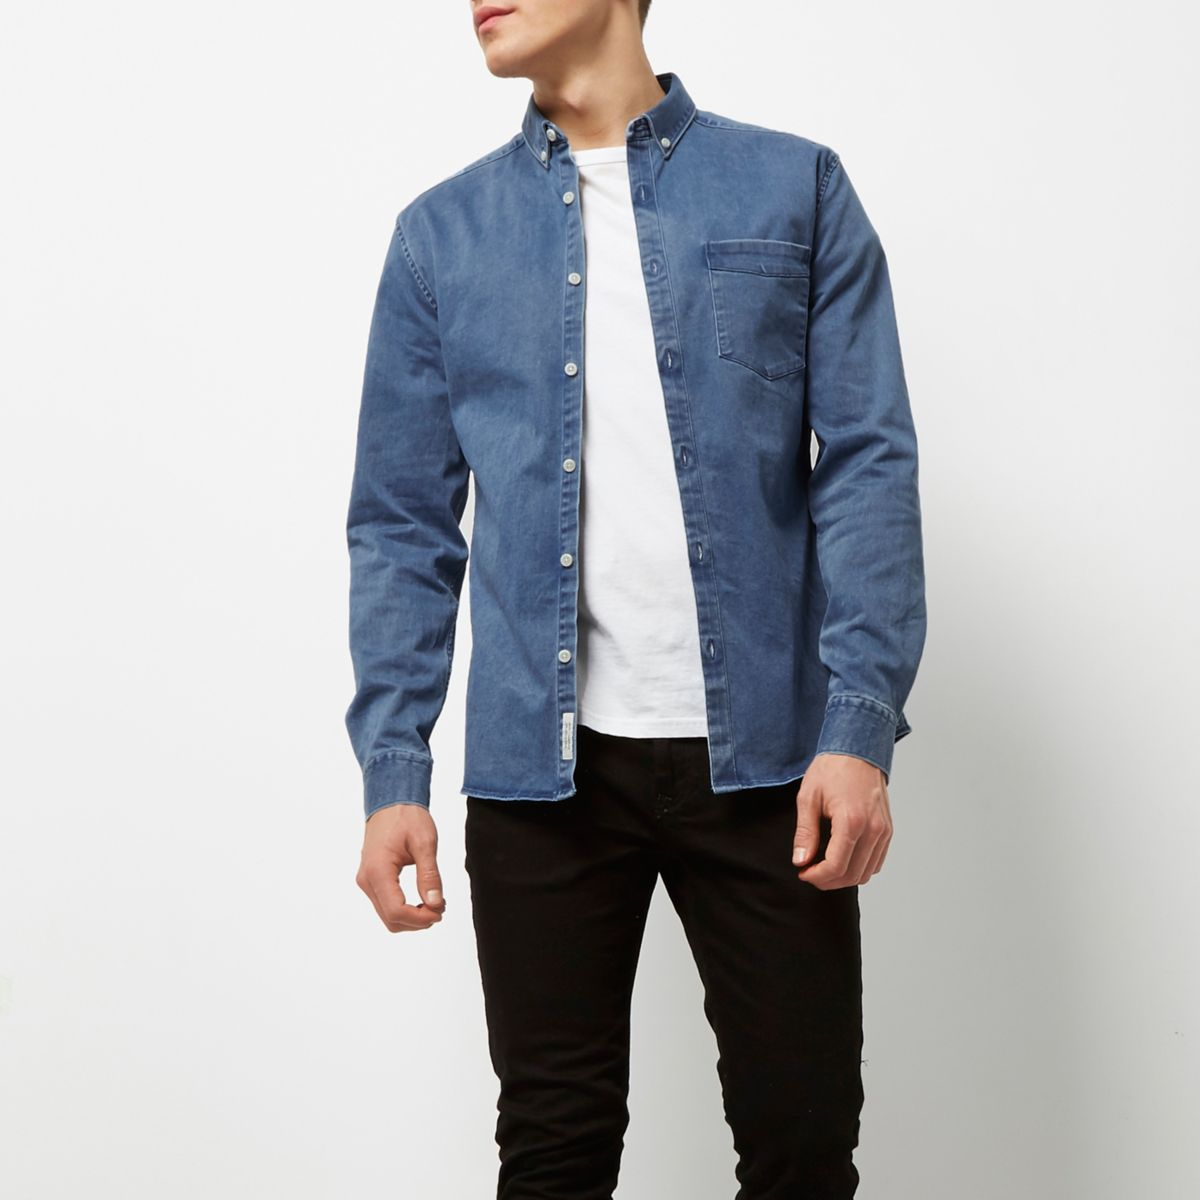 Denim, % Cotton; Box pleat back; Replacement buttons on front placket; Pocket at left chest; Button down collar; Imported; Lined two-piece button-down collar. Mini loop label on front pocket. Relaxed Fit: most generous fit,